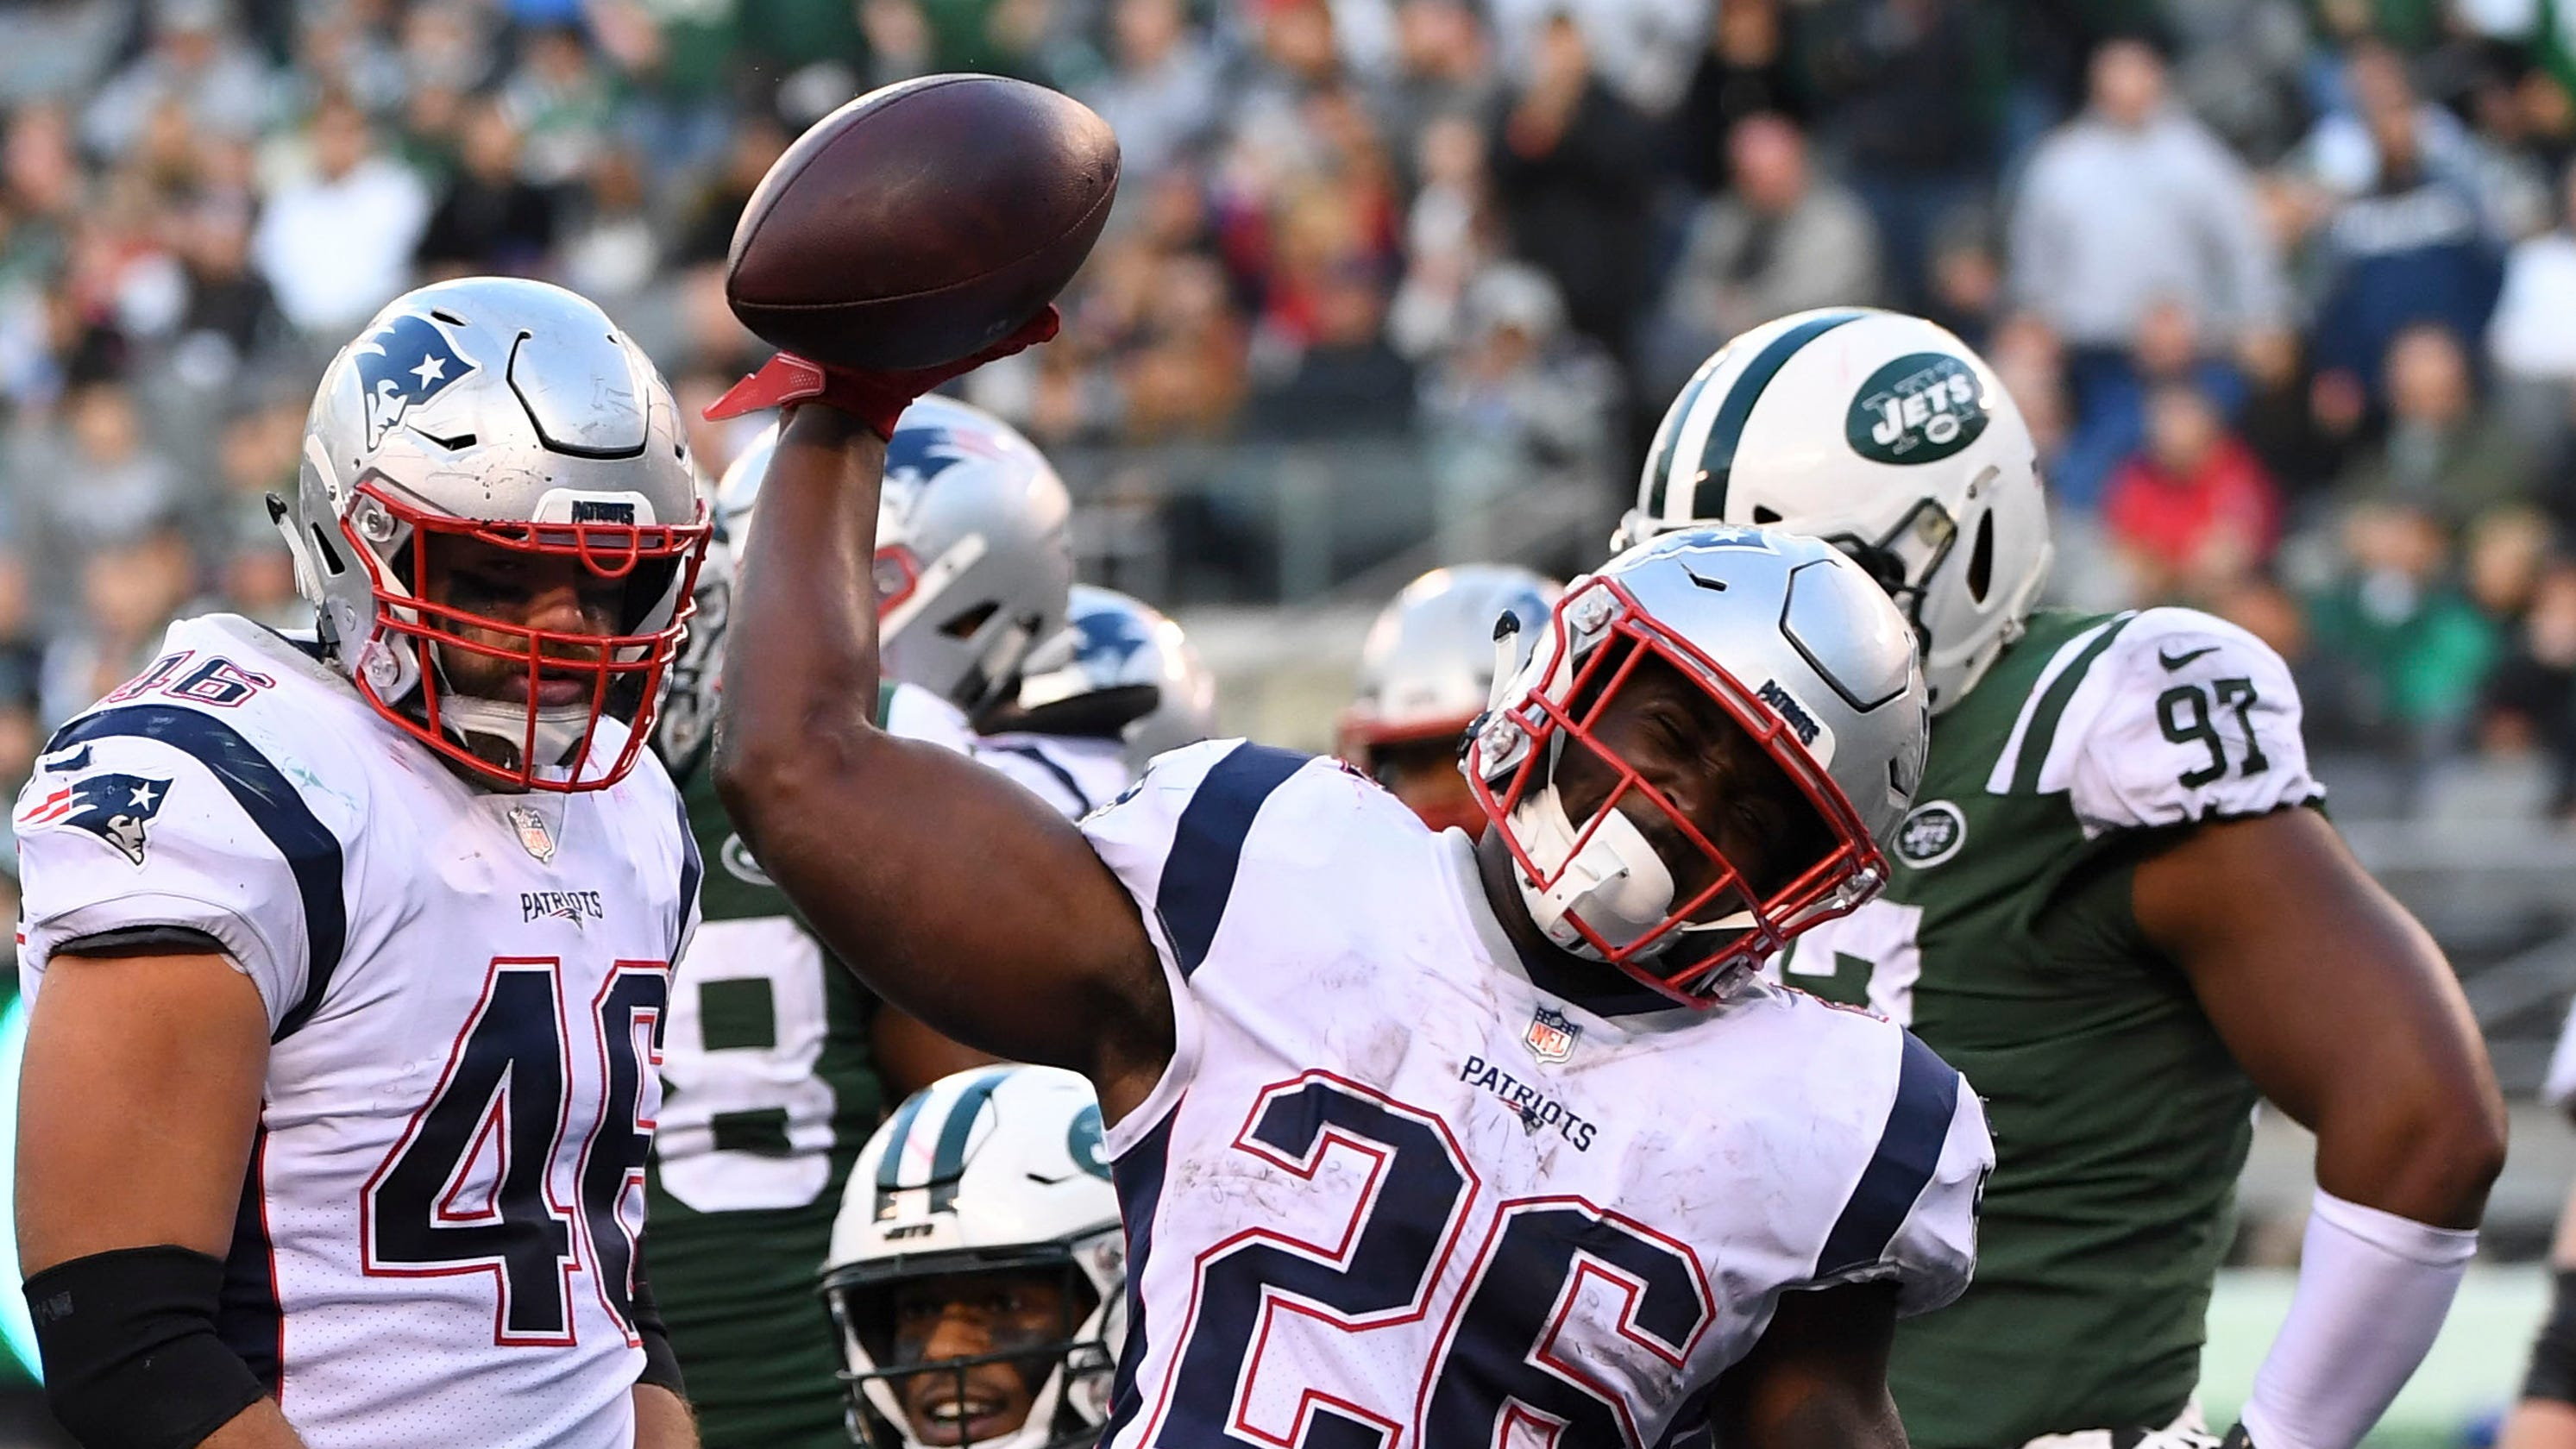 finest selection 64bb2 9dcb3 New England Patriots: Sony Michel emerges as X-factor for ...